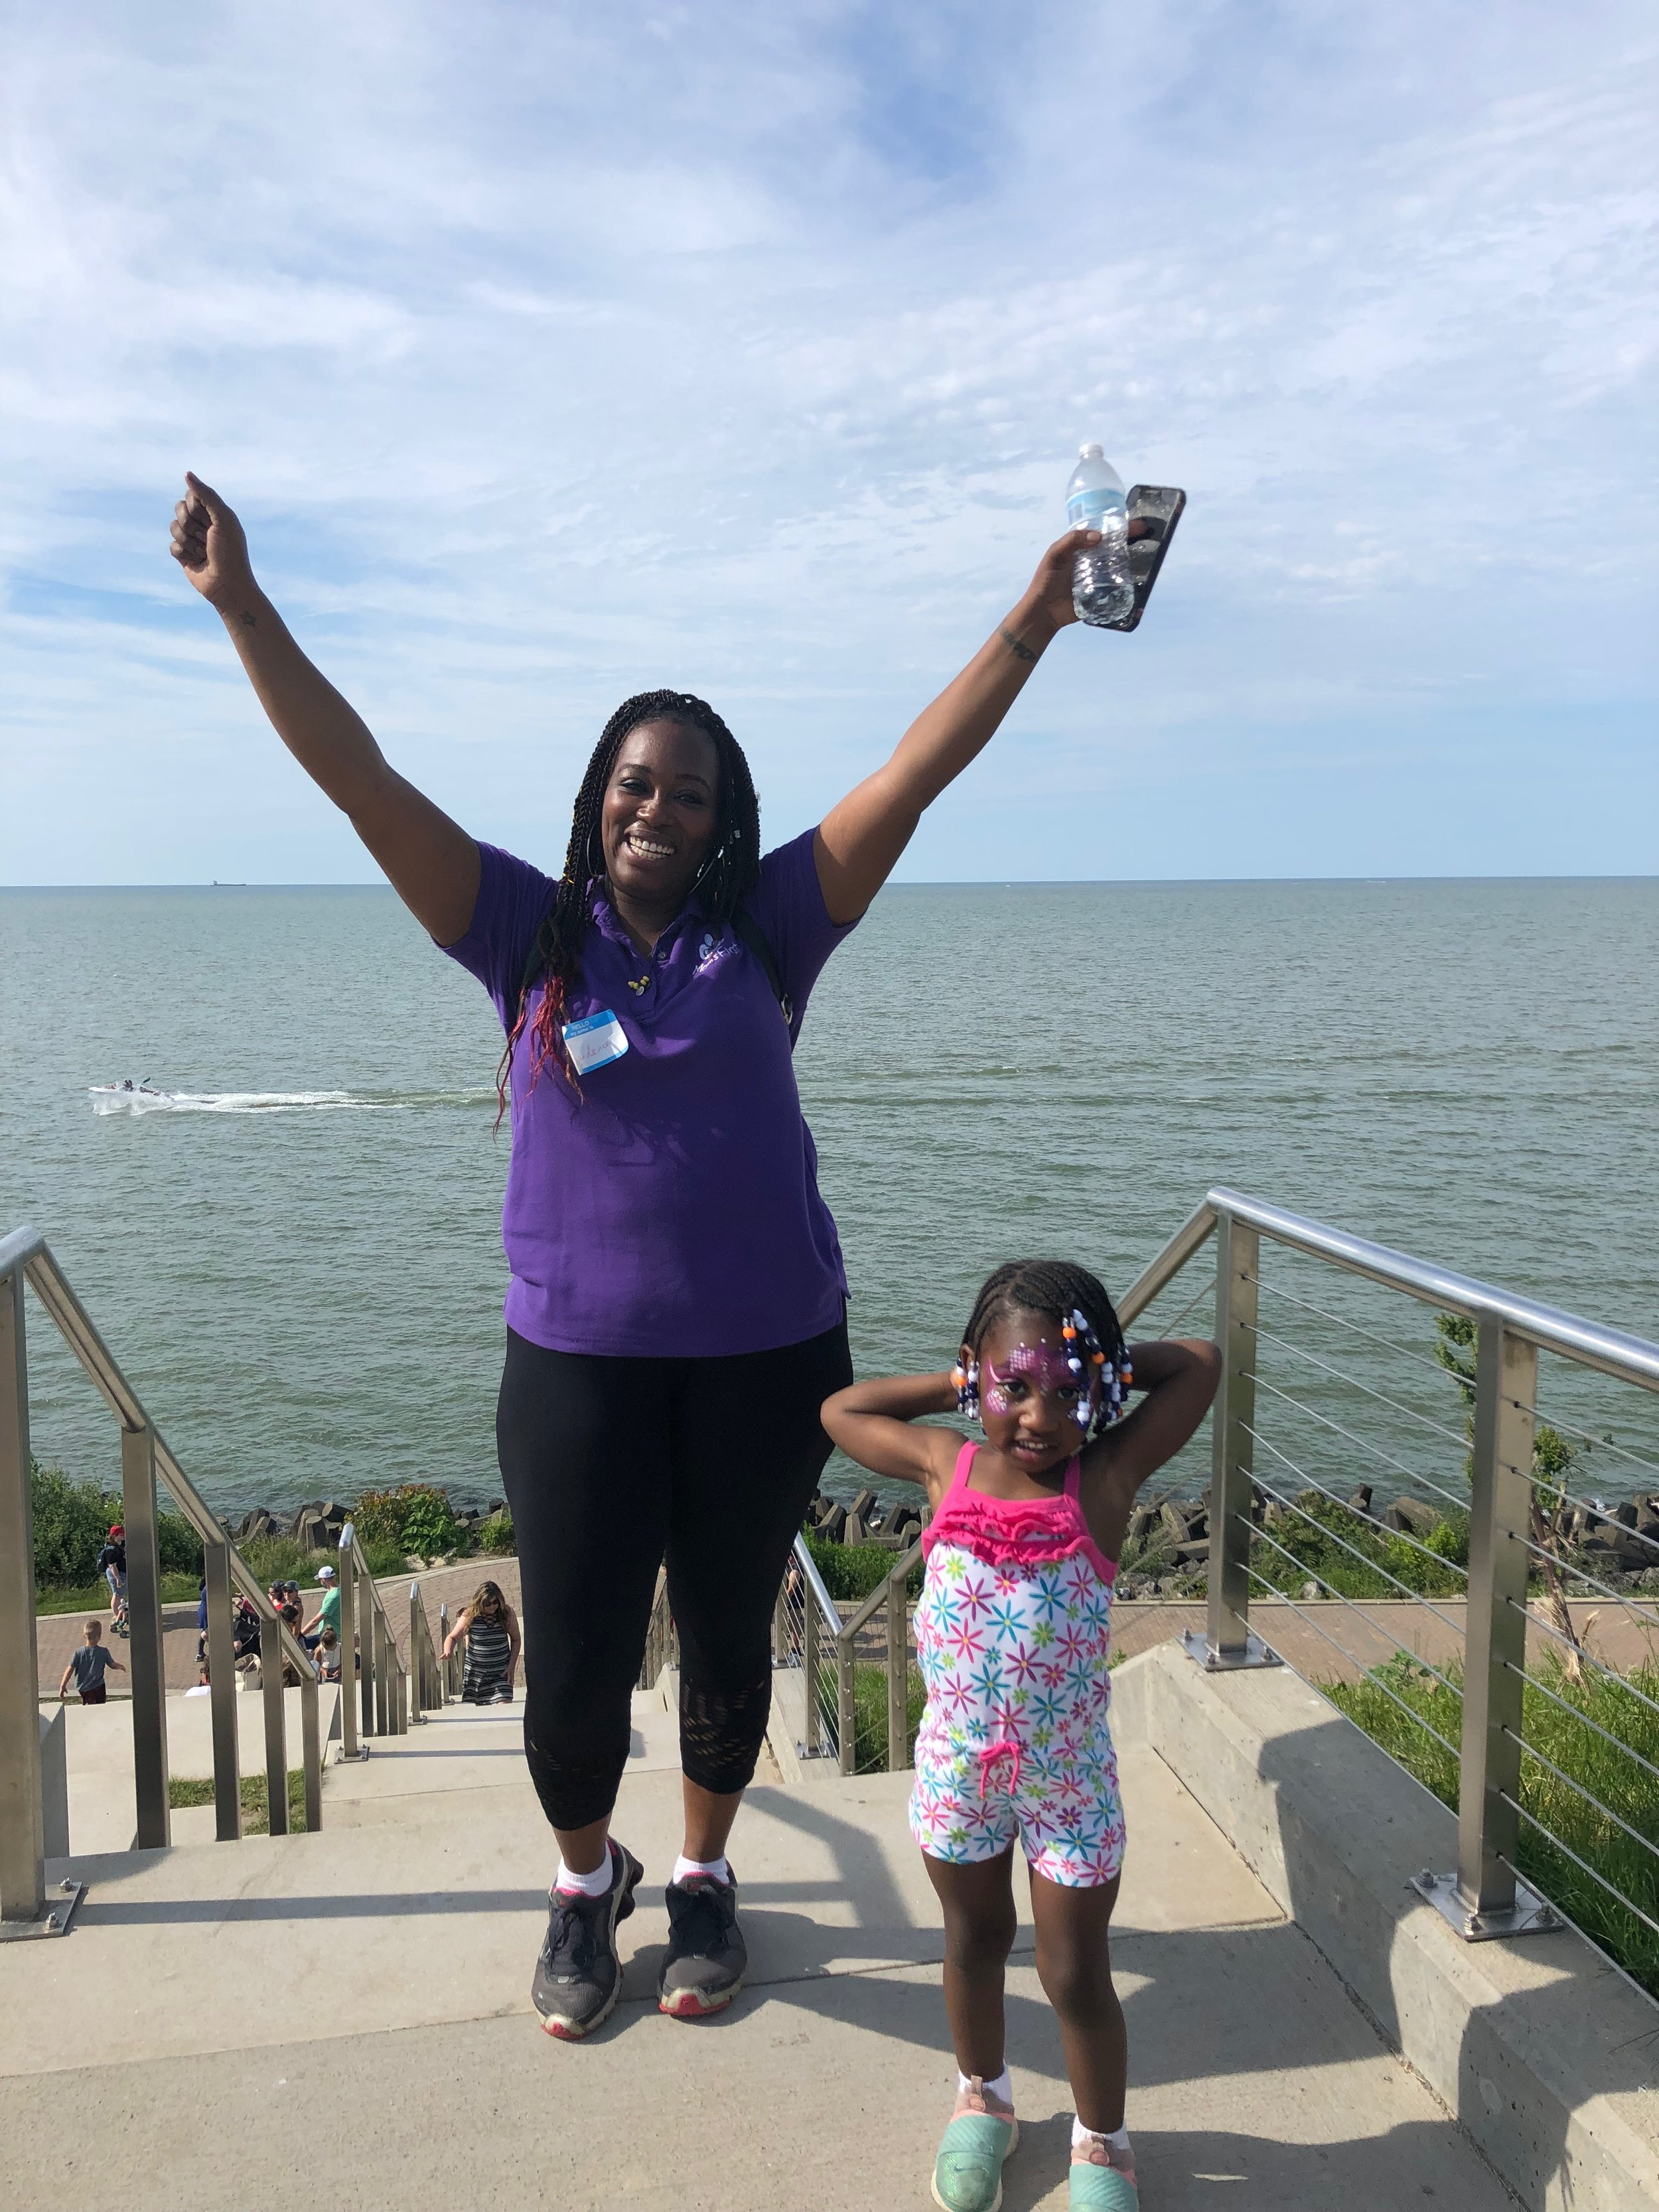 Candence and Kendell completed the Climb!